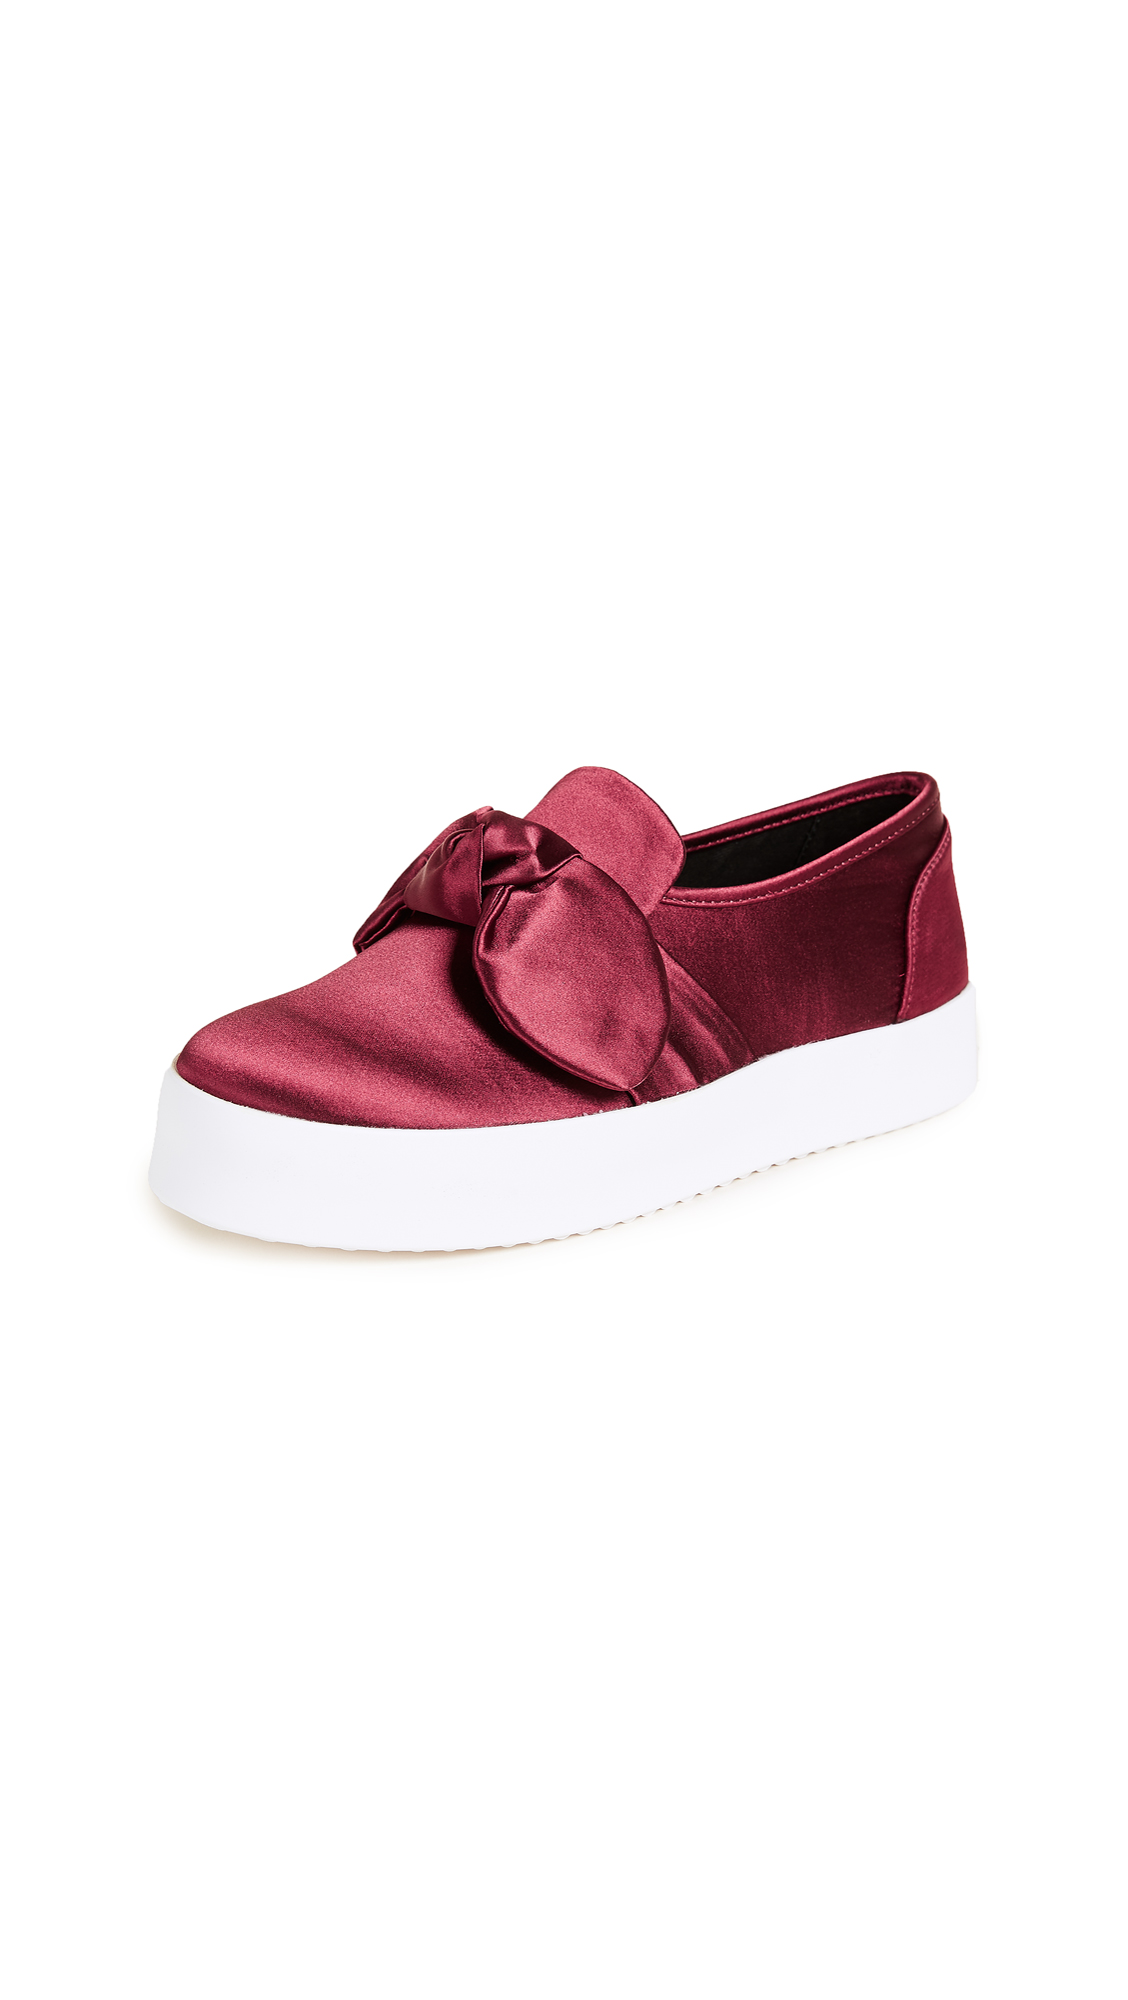 Rebecca Minkoff Stacey Bow Sneakers - Cranberry